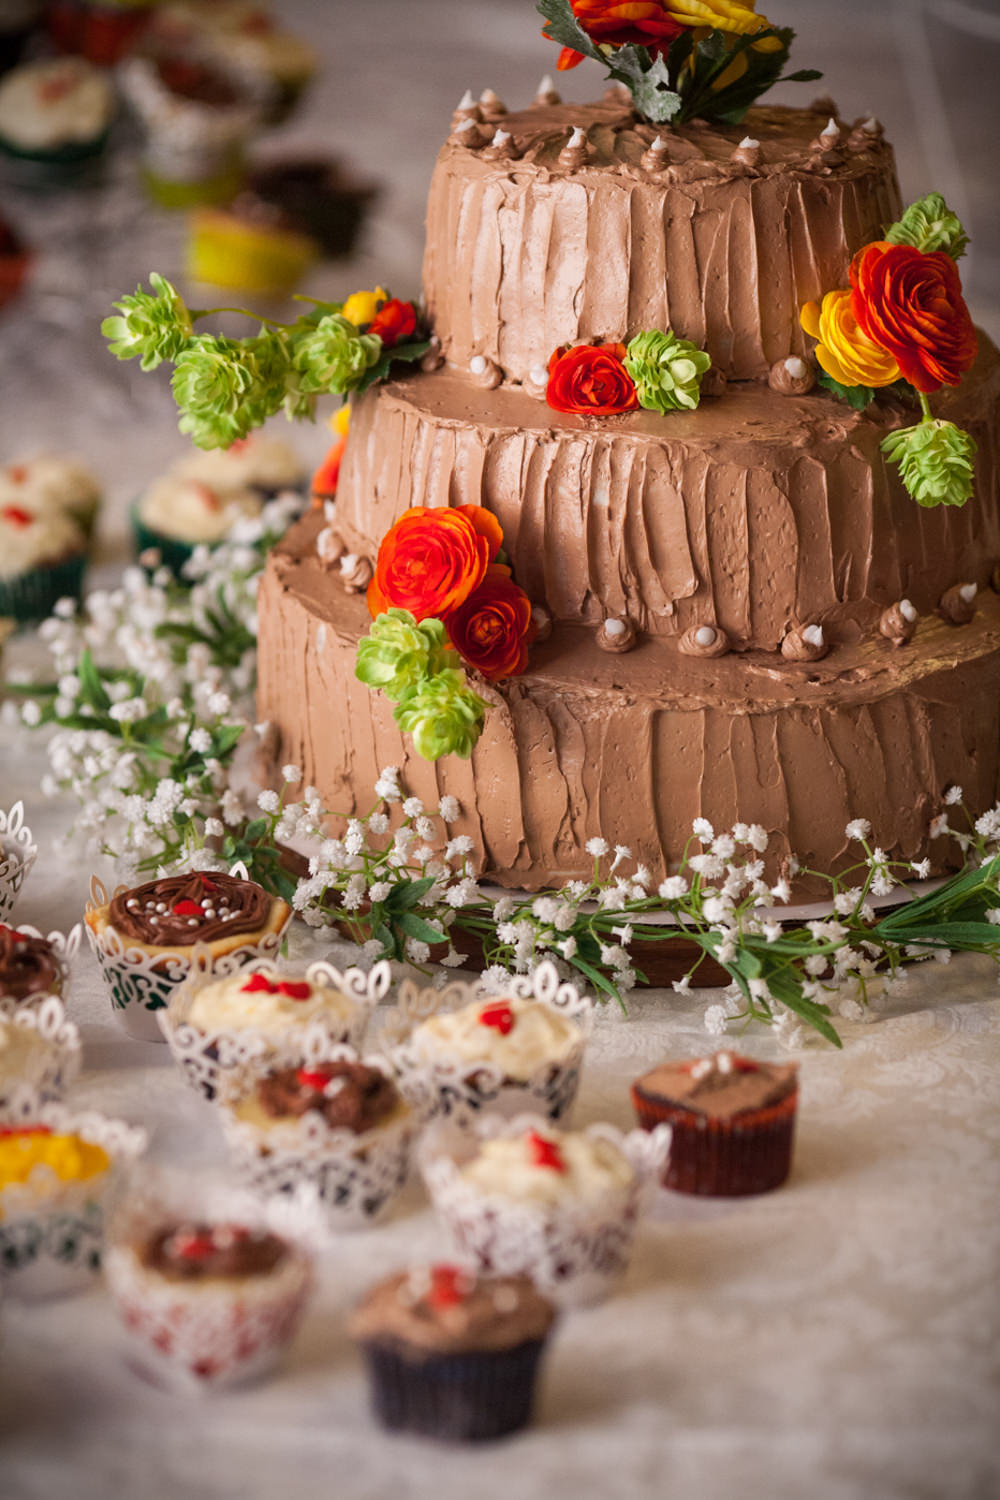 A photo of a chocolate cake adorned with red flower details and surrounded by a table of cupcakes by food photographer Stina Booth